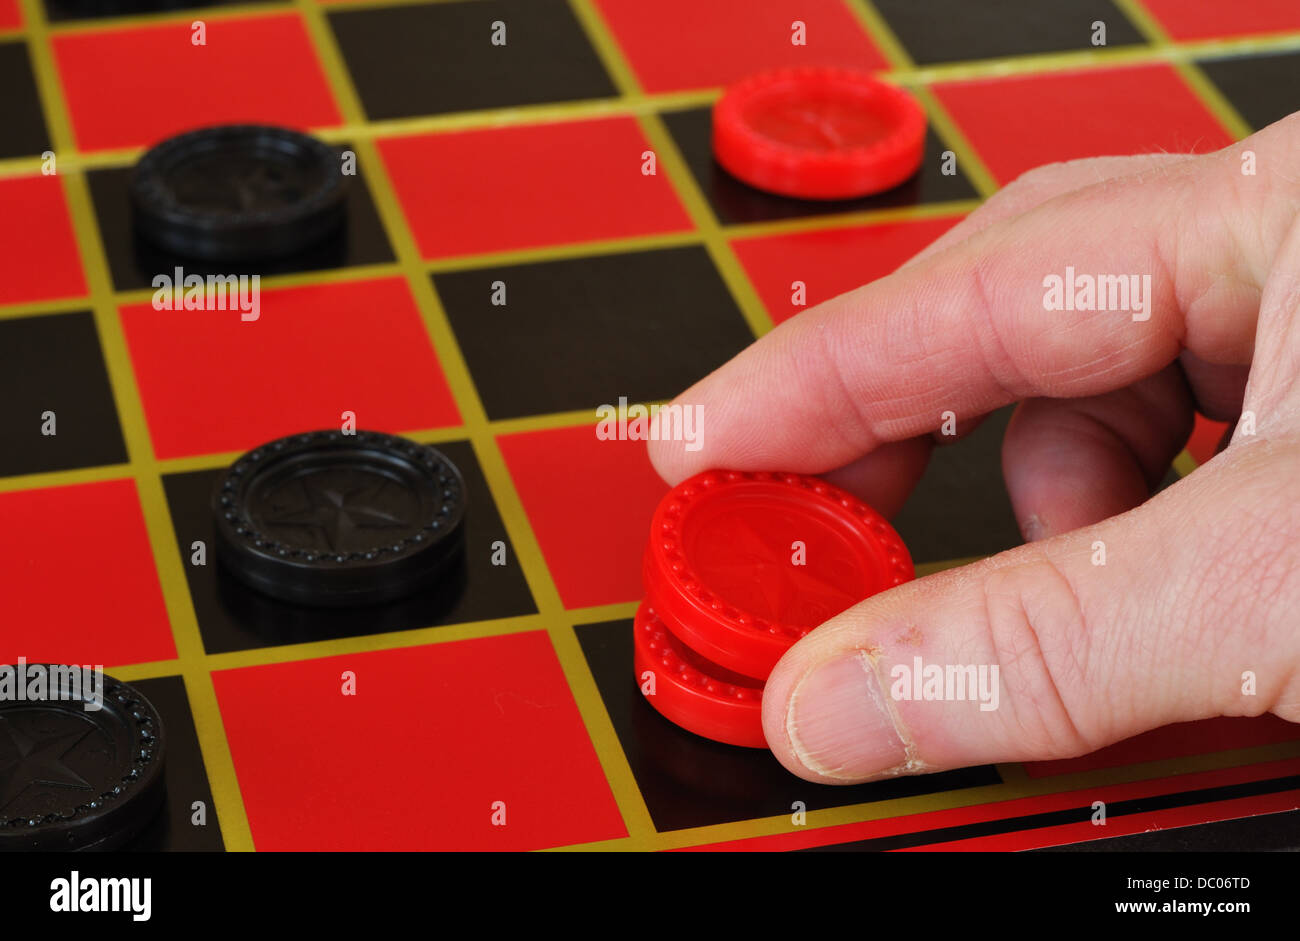 Playing draughts / checkers game on a checker board - Stock Image